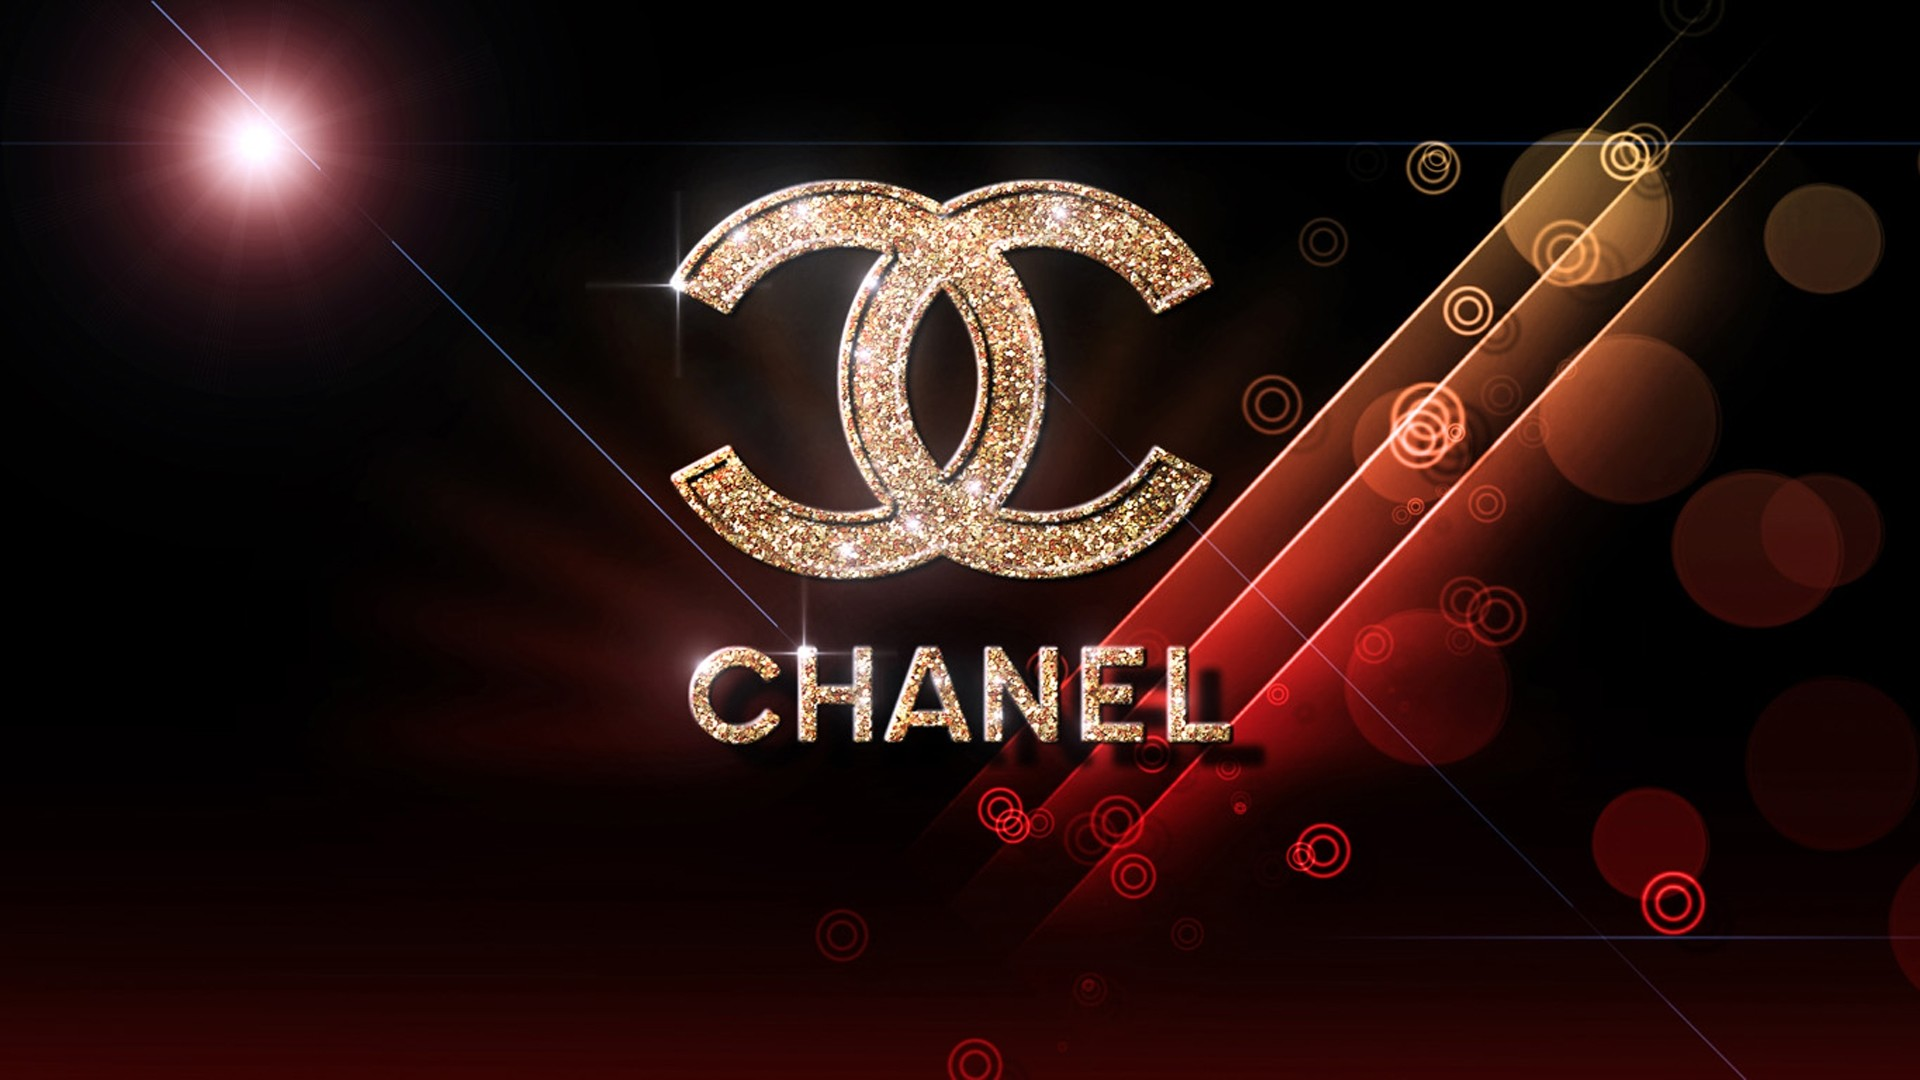 Res: 1920x1080, Logo Chanel Wallpapers HD Wallpapers - HD Wallpapers